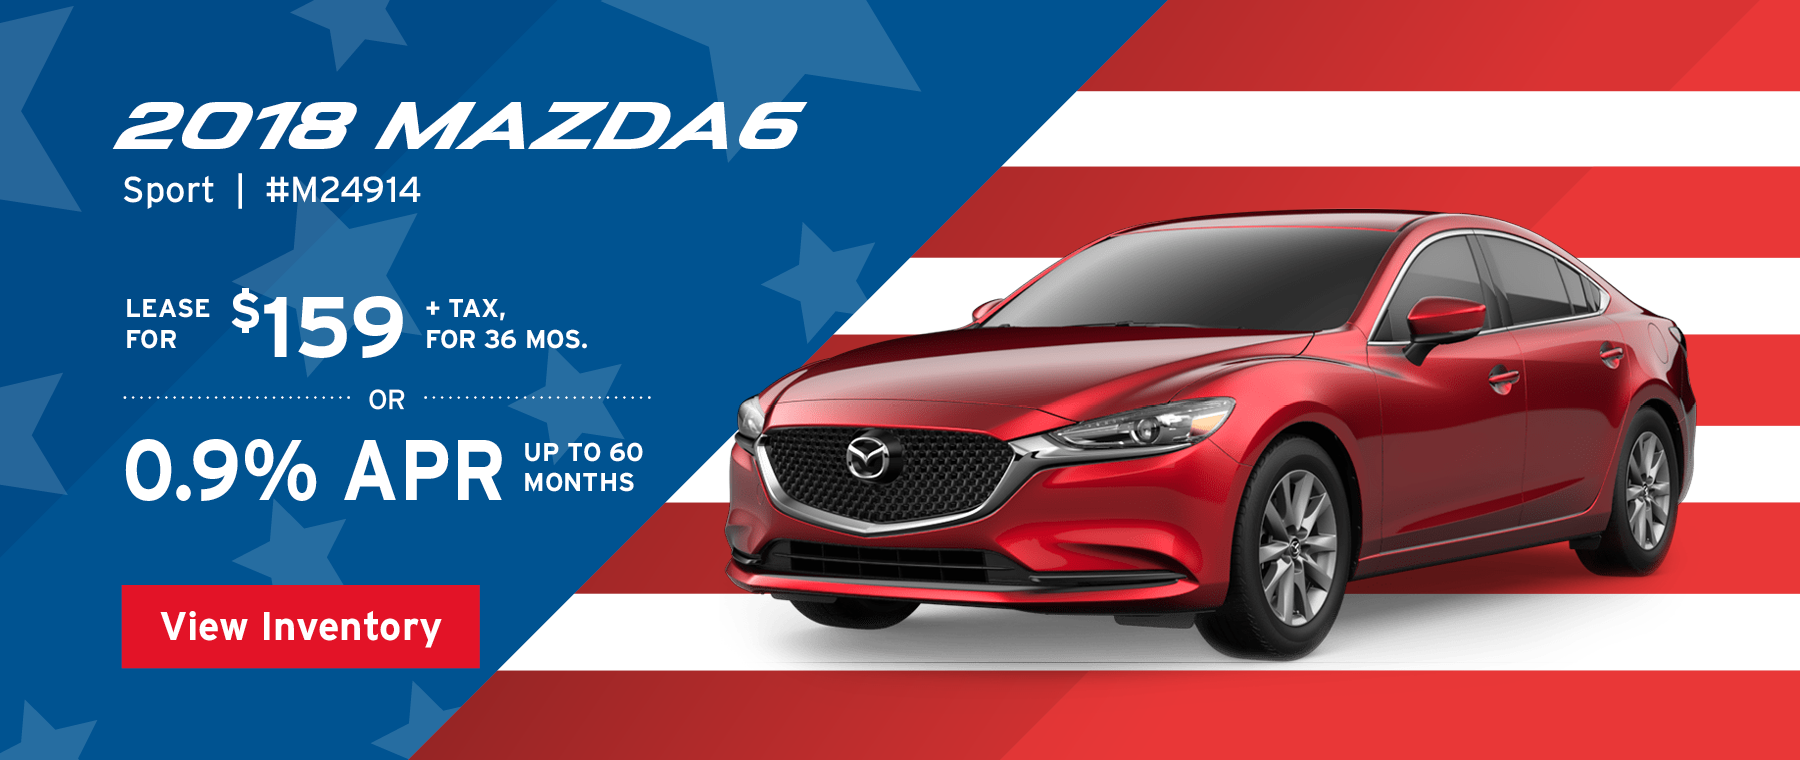 Lease the 2018 Mazda3 Sport for $159, plus tax for 36 months, or 0.9% APR up to 60 months.